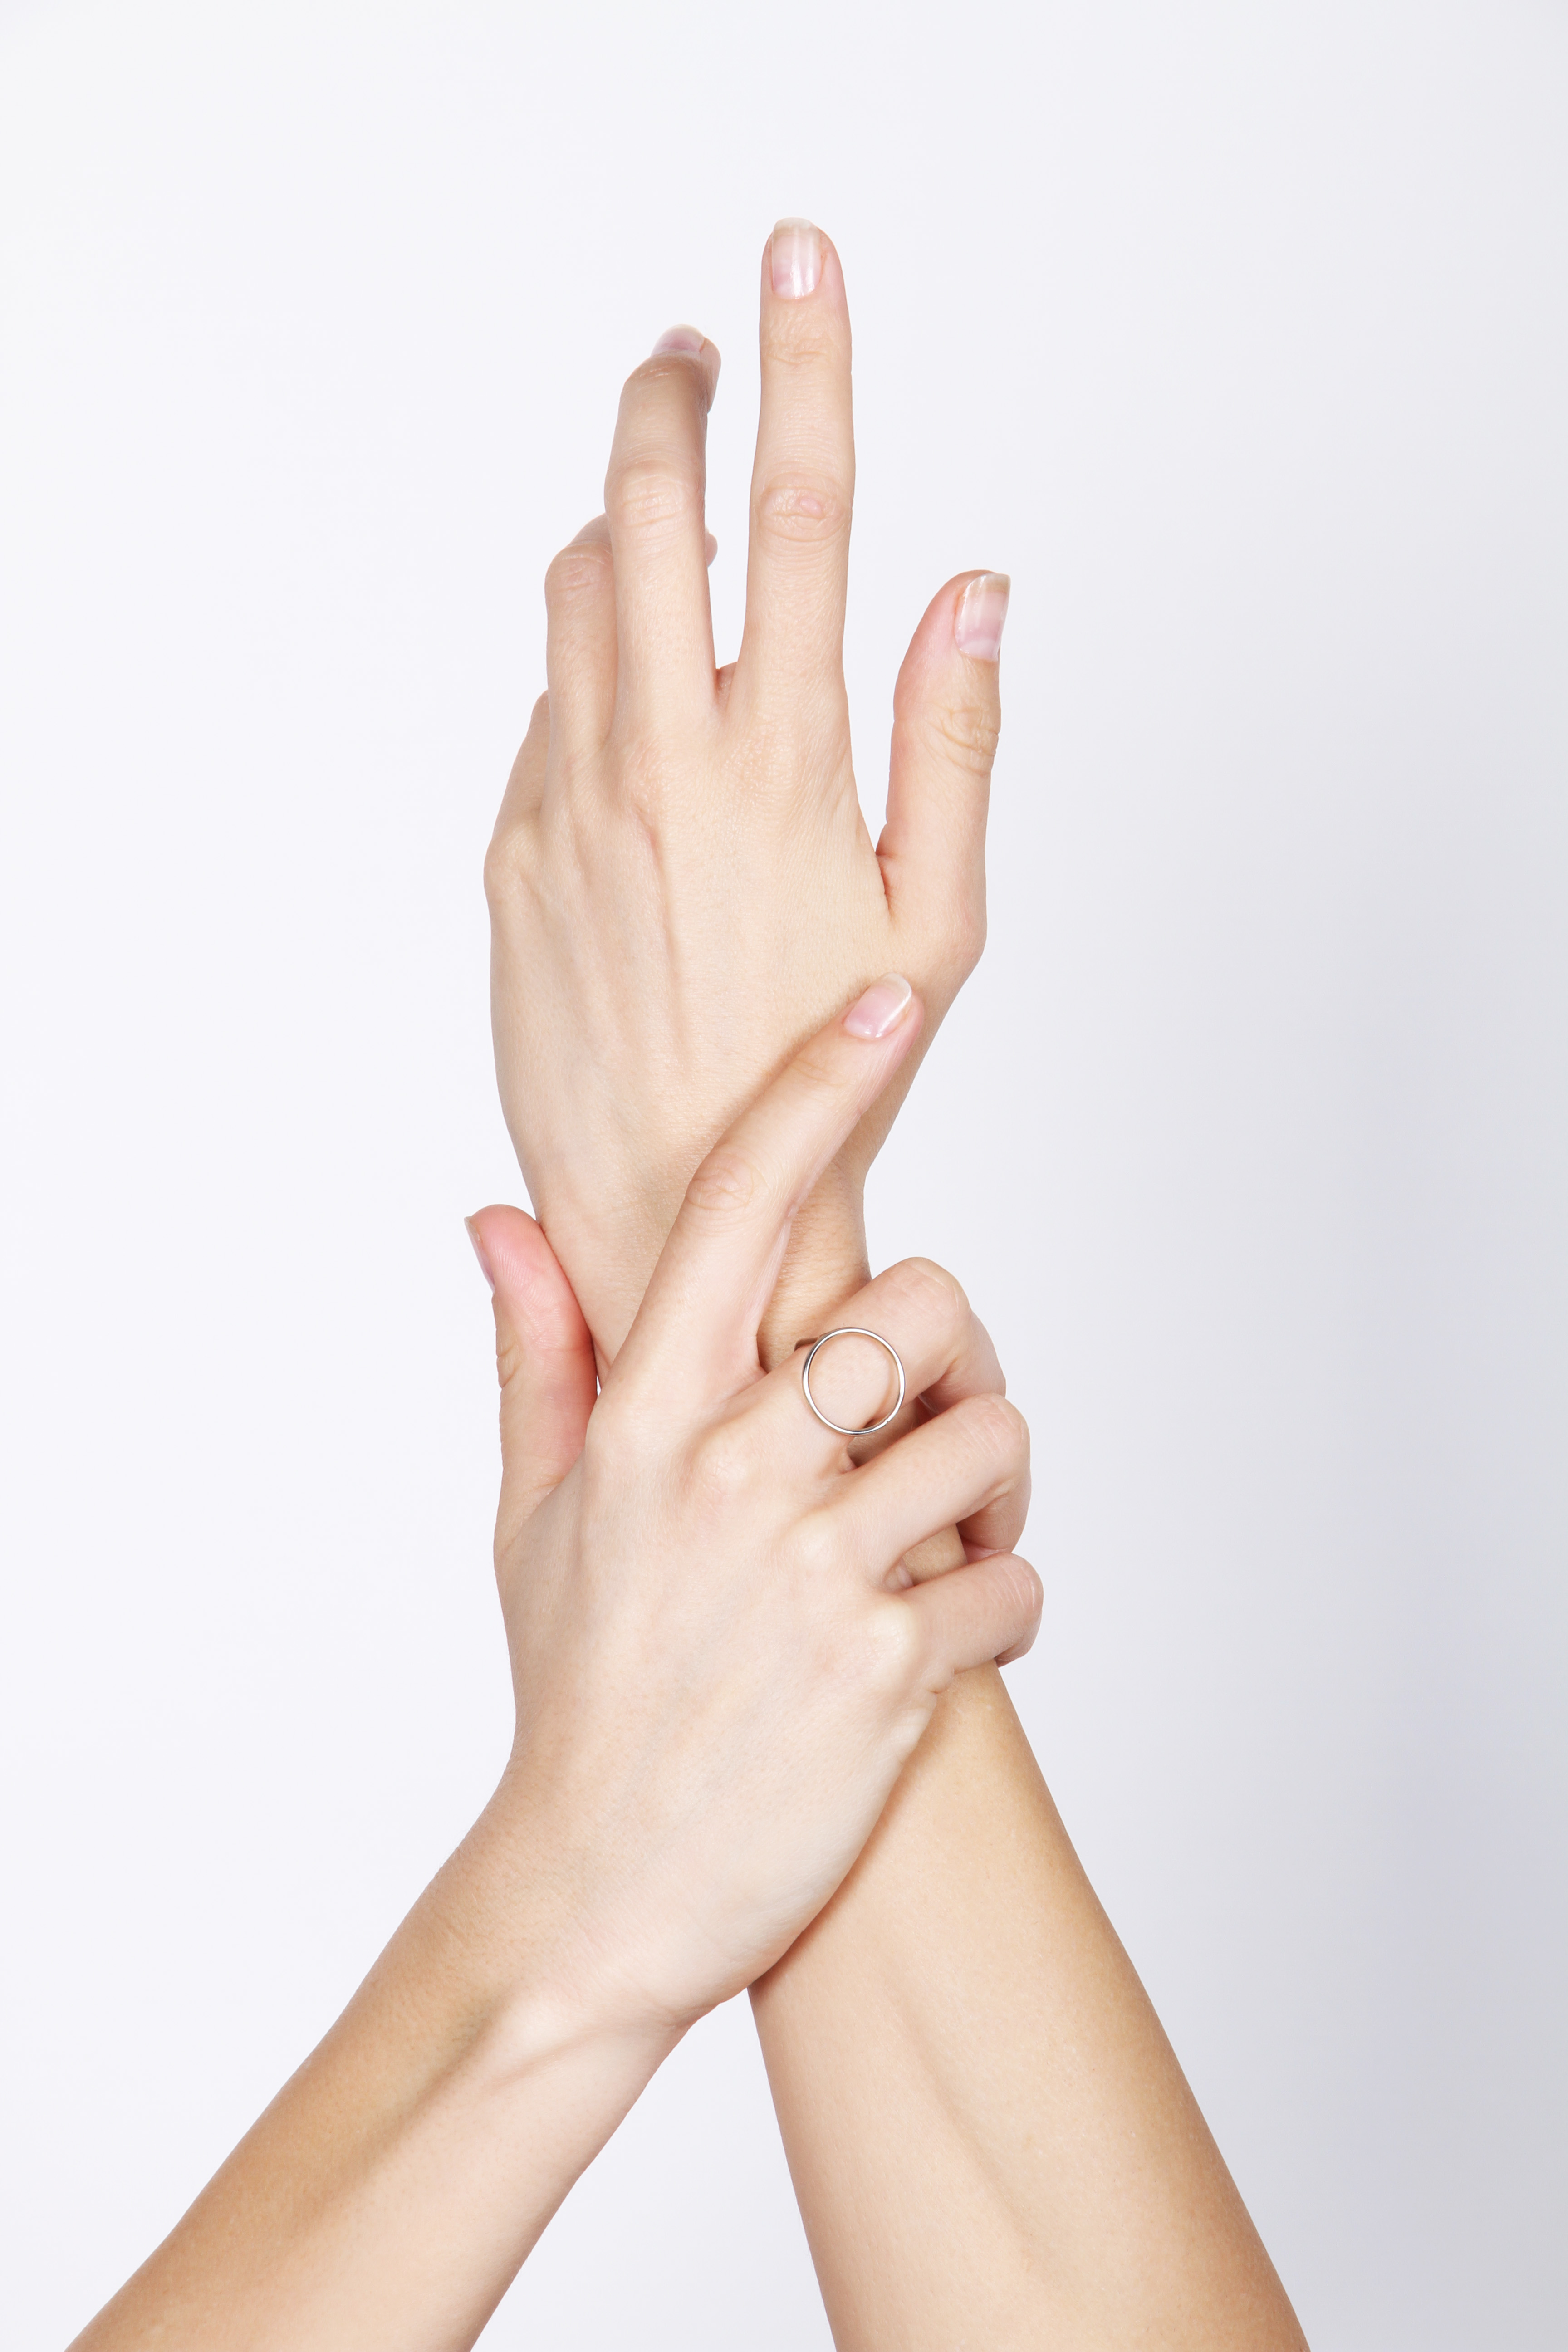 Lucy Lawrence_Hands3